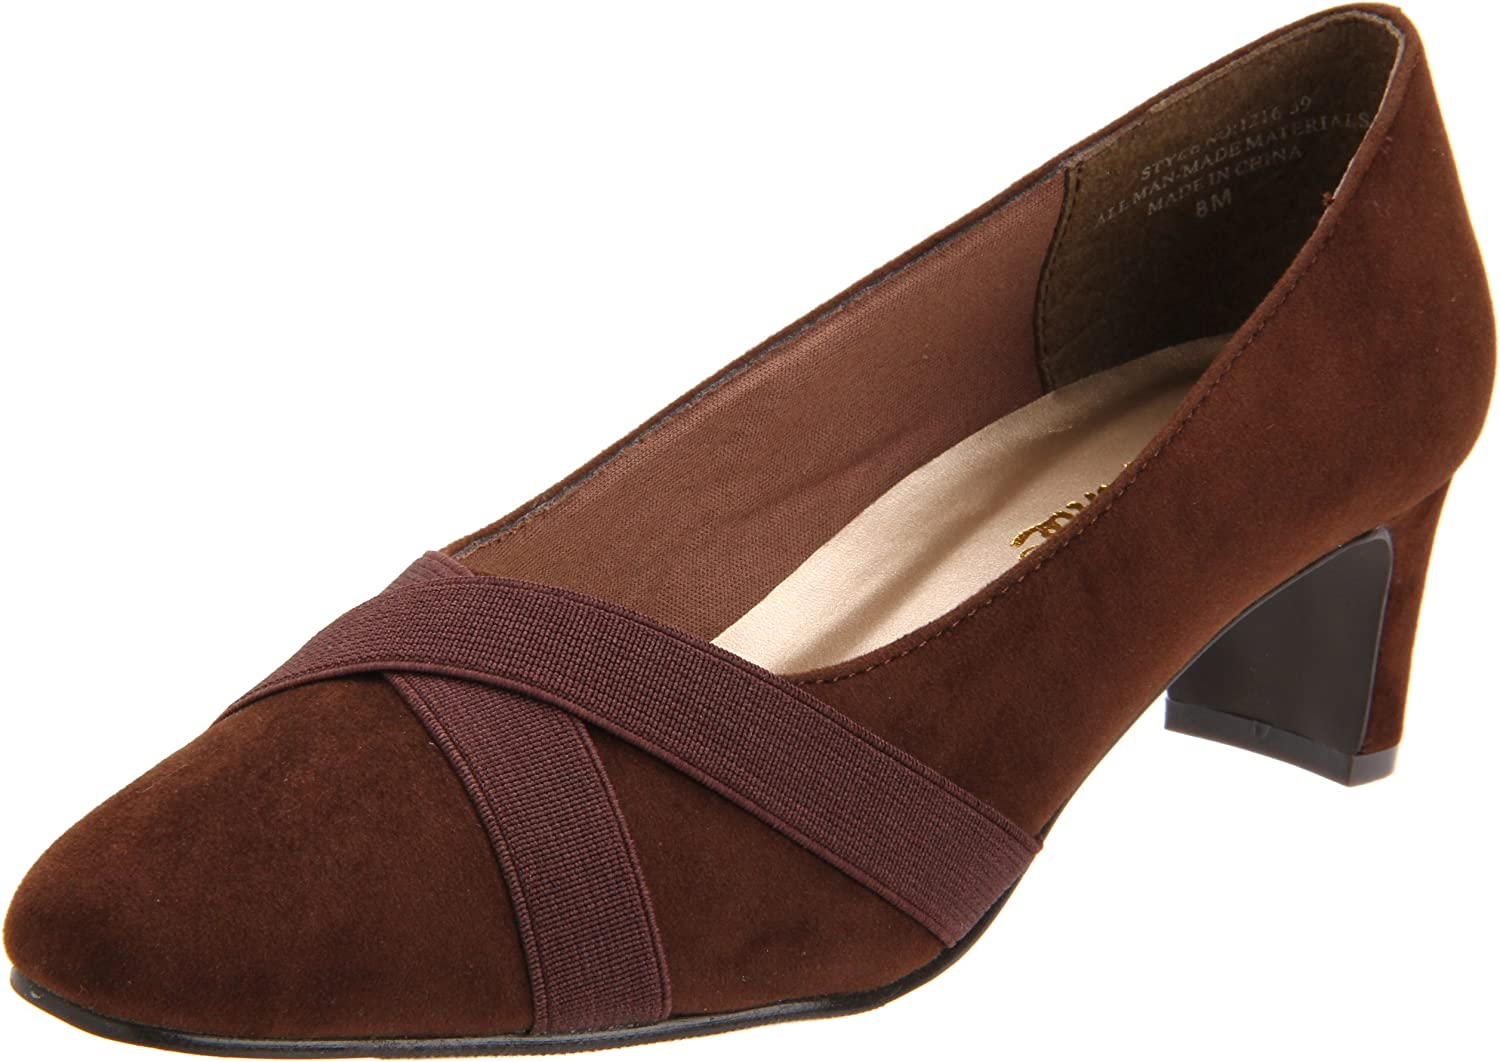 Annie shoes Women's Astor Pump,Brown,8 WW US